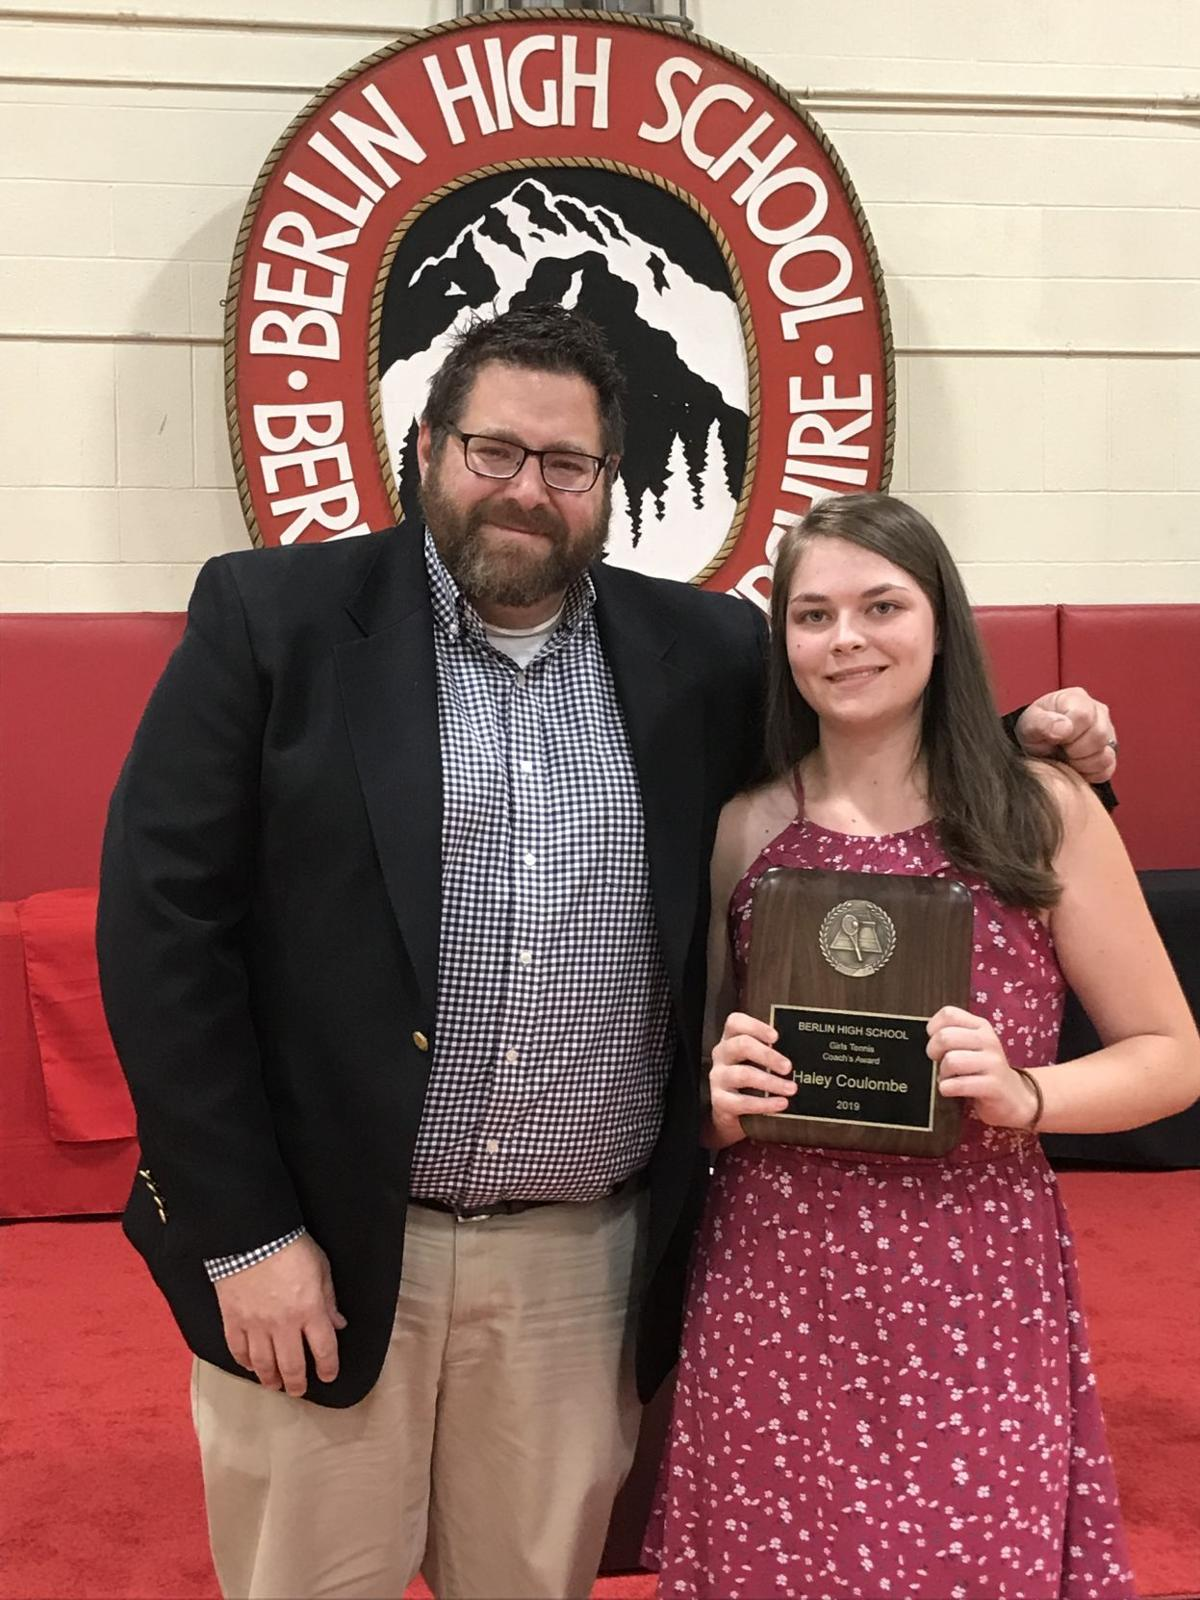 Hailey Coulombe with Coach Andy Rancloes